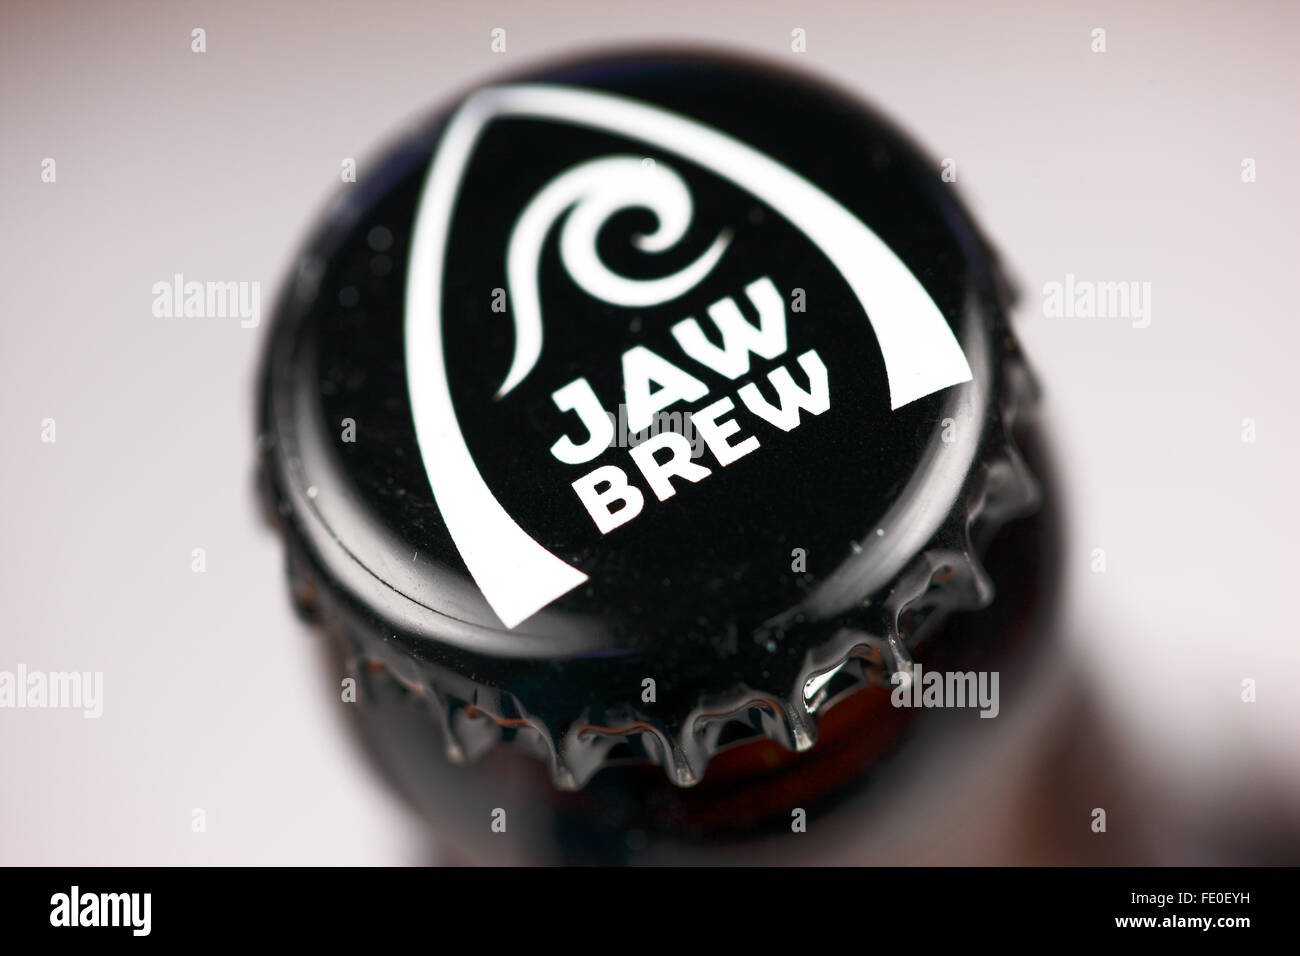 Bottle lid of Jaw Brew from the Glasgow based Real Ale Craft Brewery - Stock Image